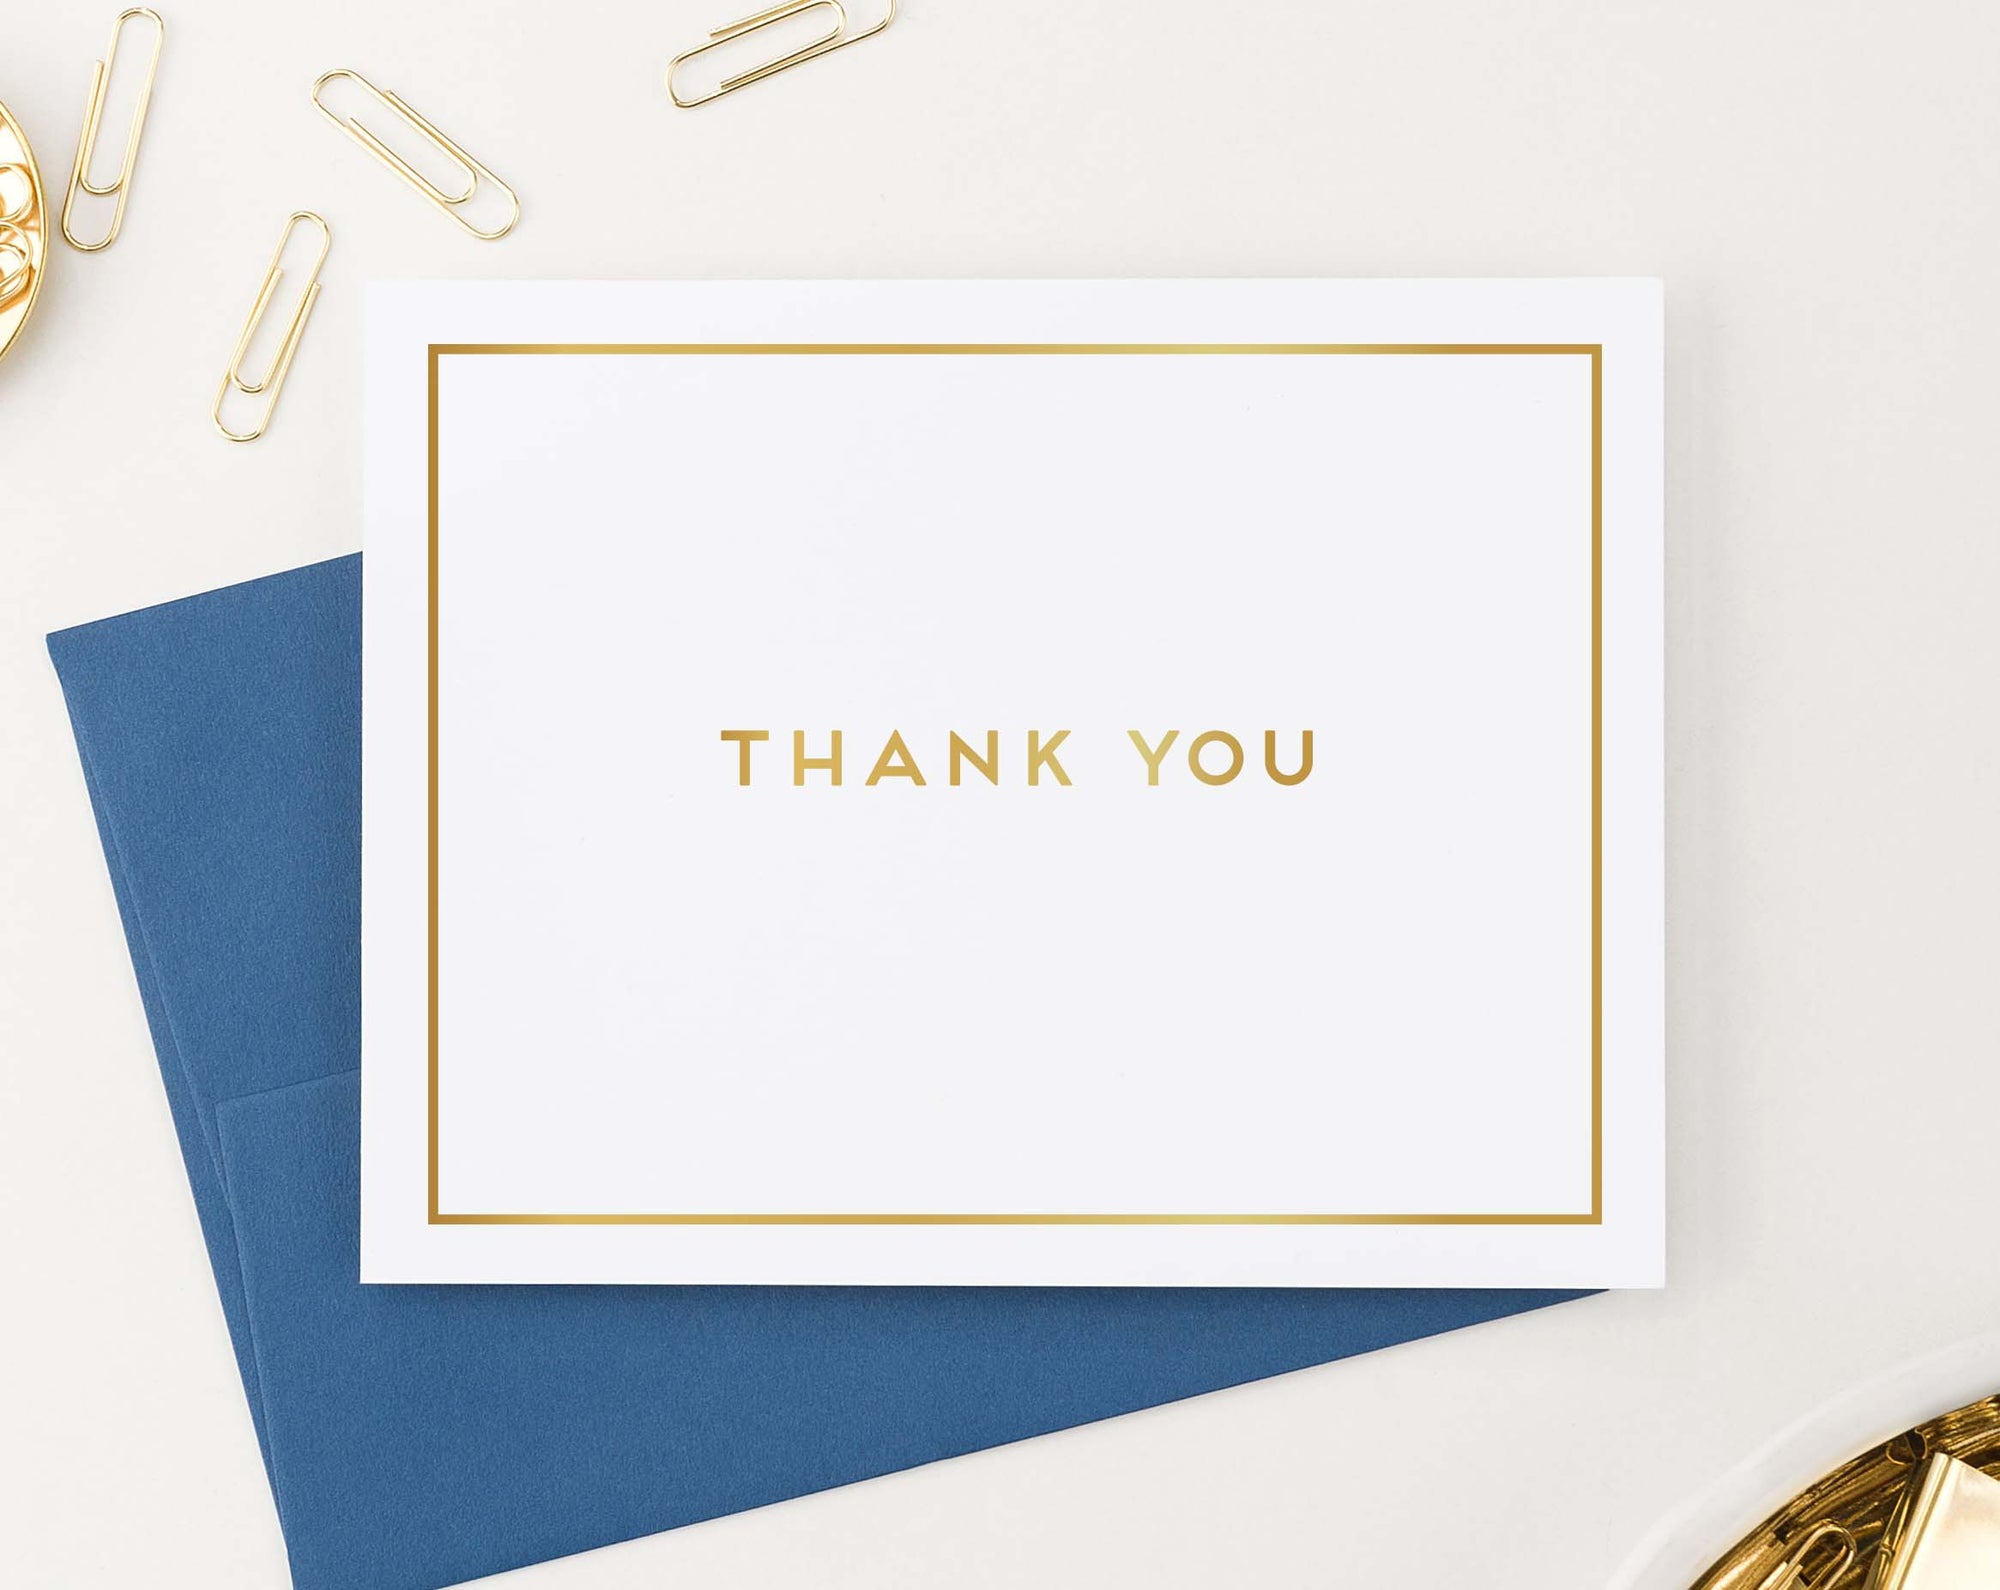 TY067 gold block font thank you cards with border simple classic folded